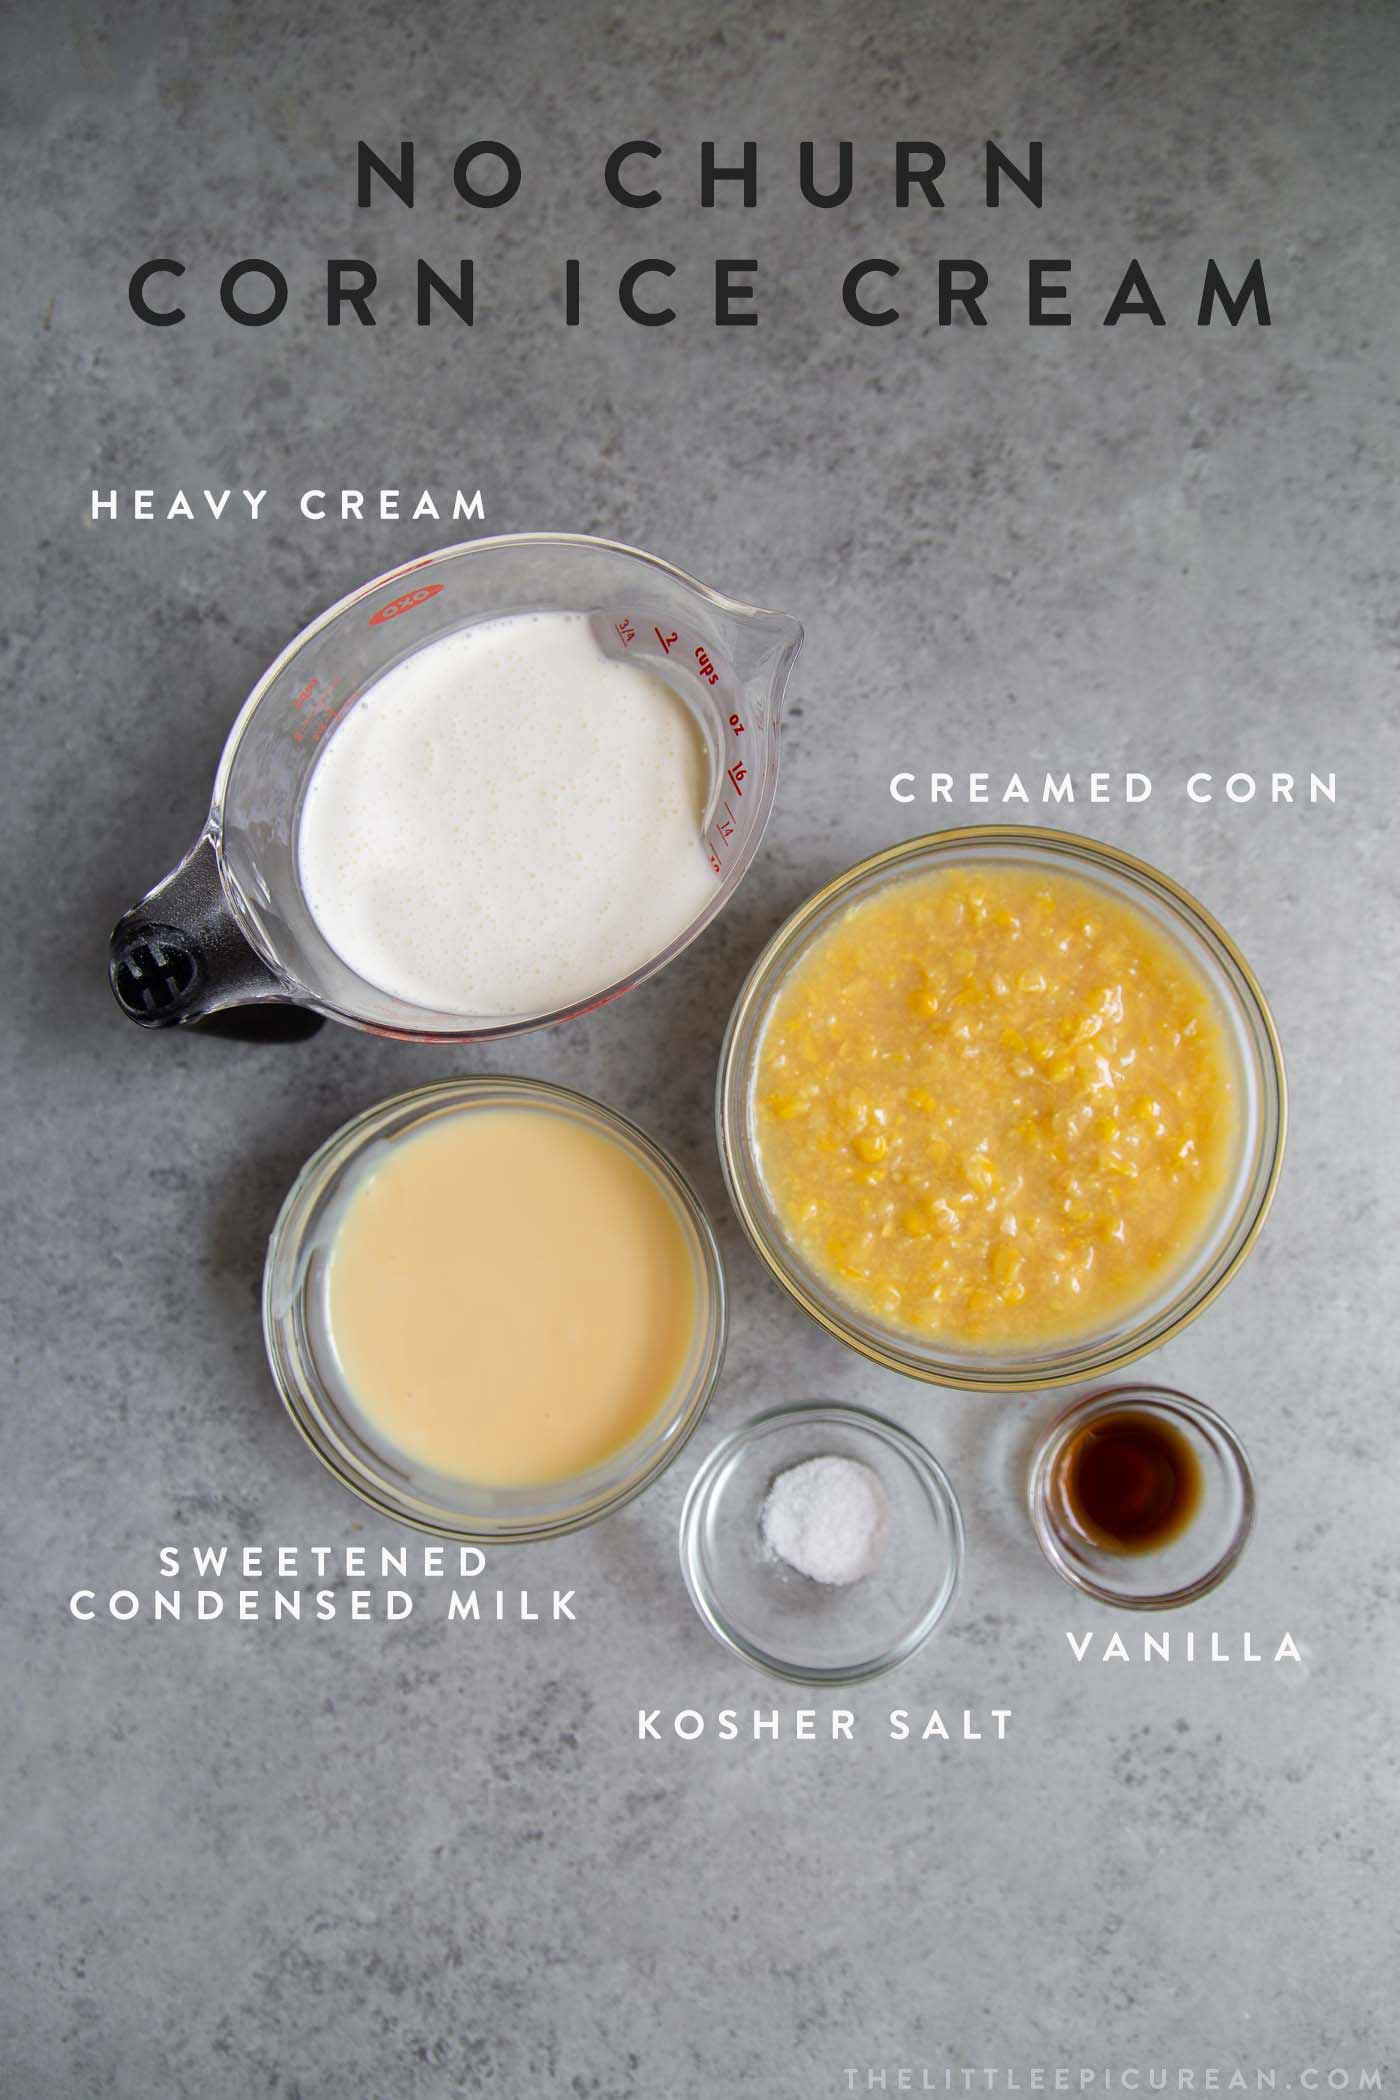 No Churn Corn Ice Cream Ingredients